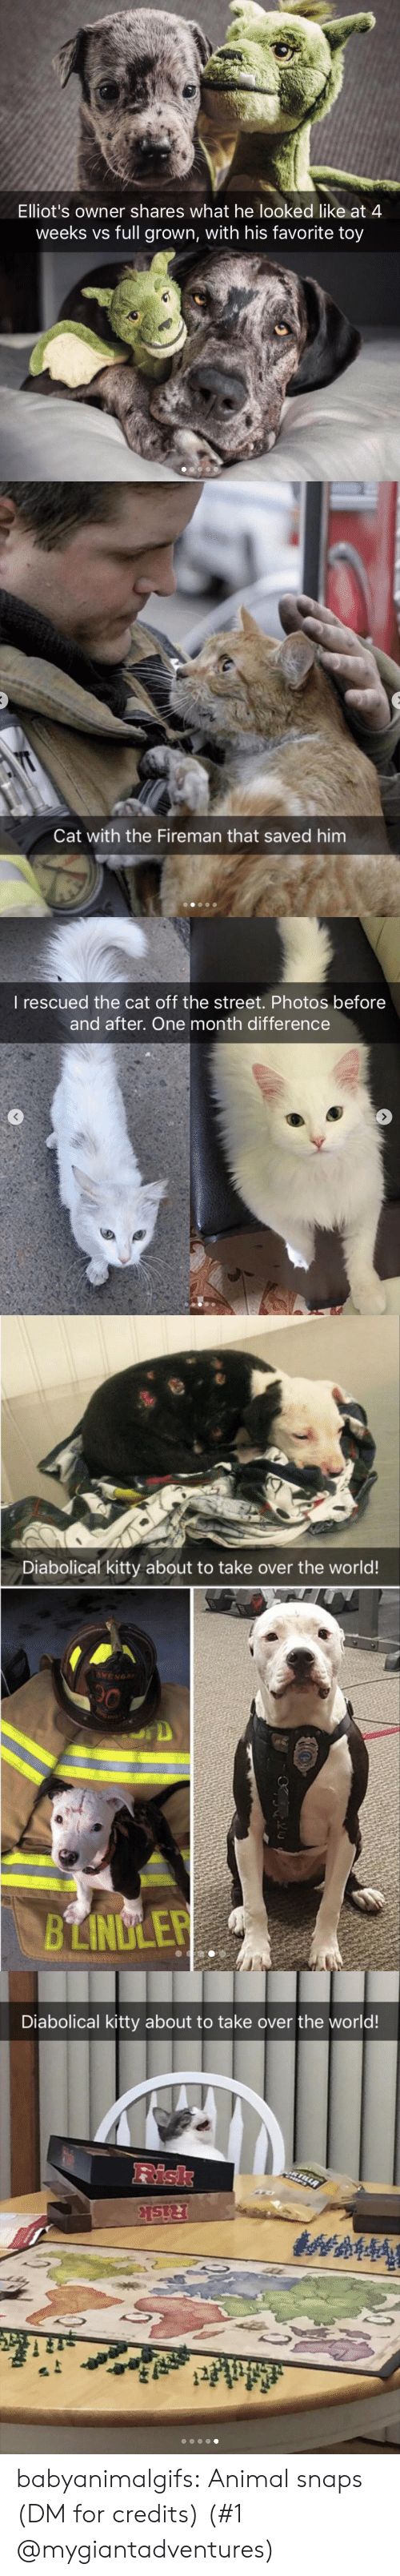 Instagram, Target, and Tumblr: Elliot's owner shares what he looked like at 4  weeks vs full grown, with his favorite toy   Cat with the Fireman that saved him   I rescued the cat off the street. Photos before  and after. One month difference   Diabolical kitty about to take over the world!  BLINULEP   Diabolical kitty about to take over the world!  Risk babyanimalgifs: Animal snaps  (DM for credits) (#1 @mygiantadventures)